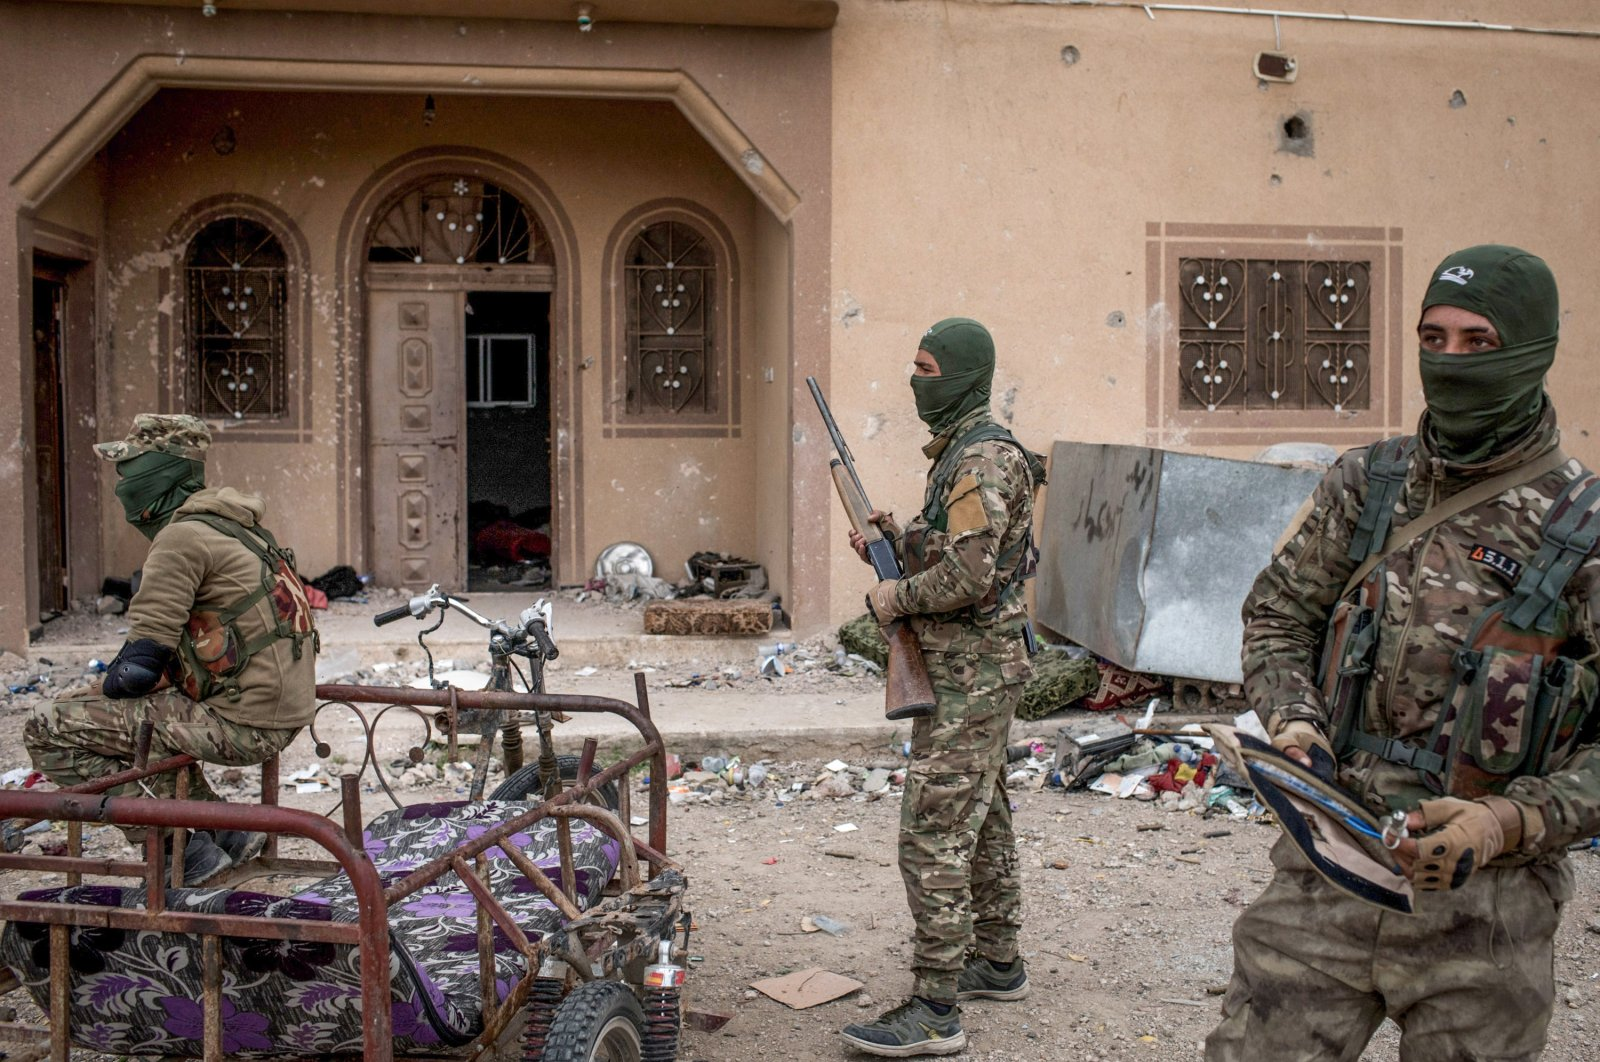 YPG/PKK terrorists are seen in front of a building in Baghouz, Syria, March 24, 2019. (Photo by Chris McGrath/Getty Images)